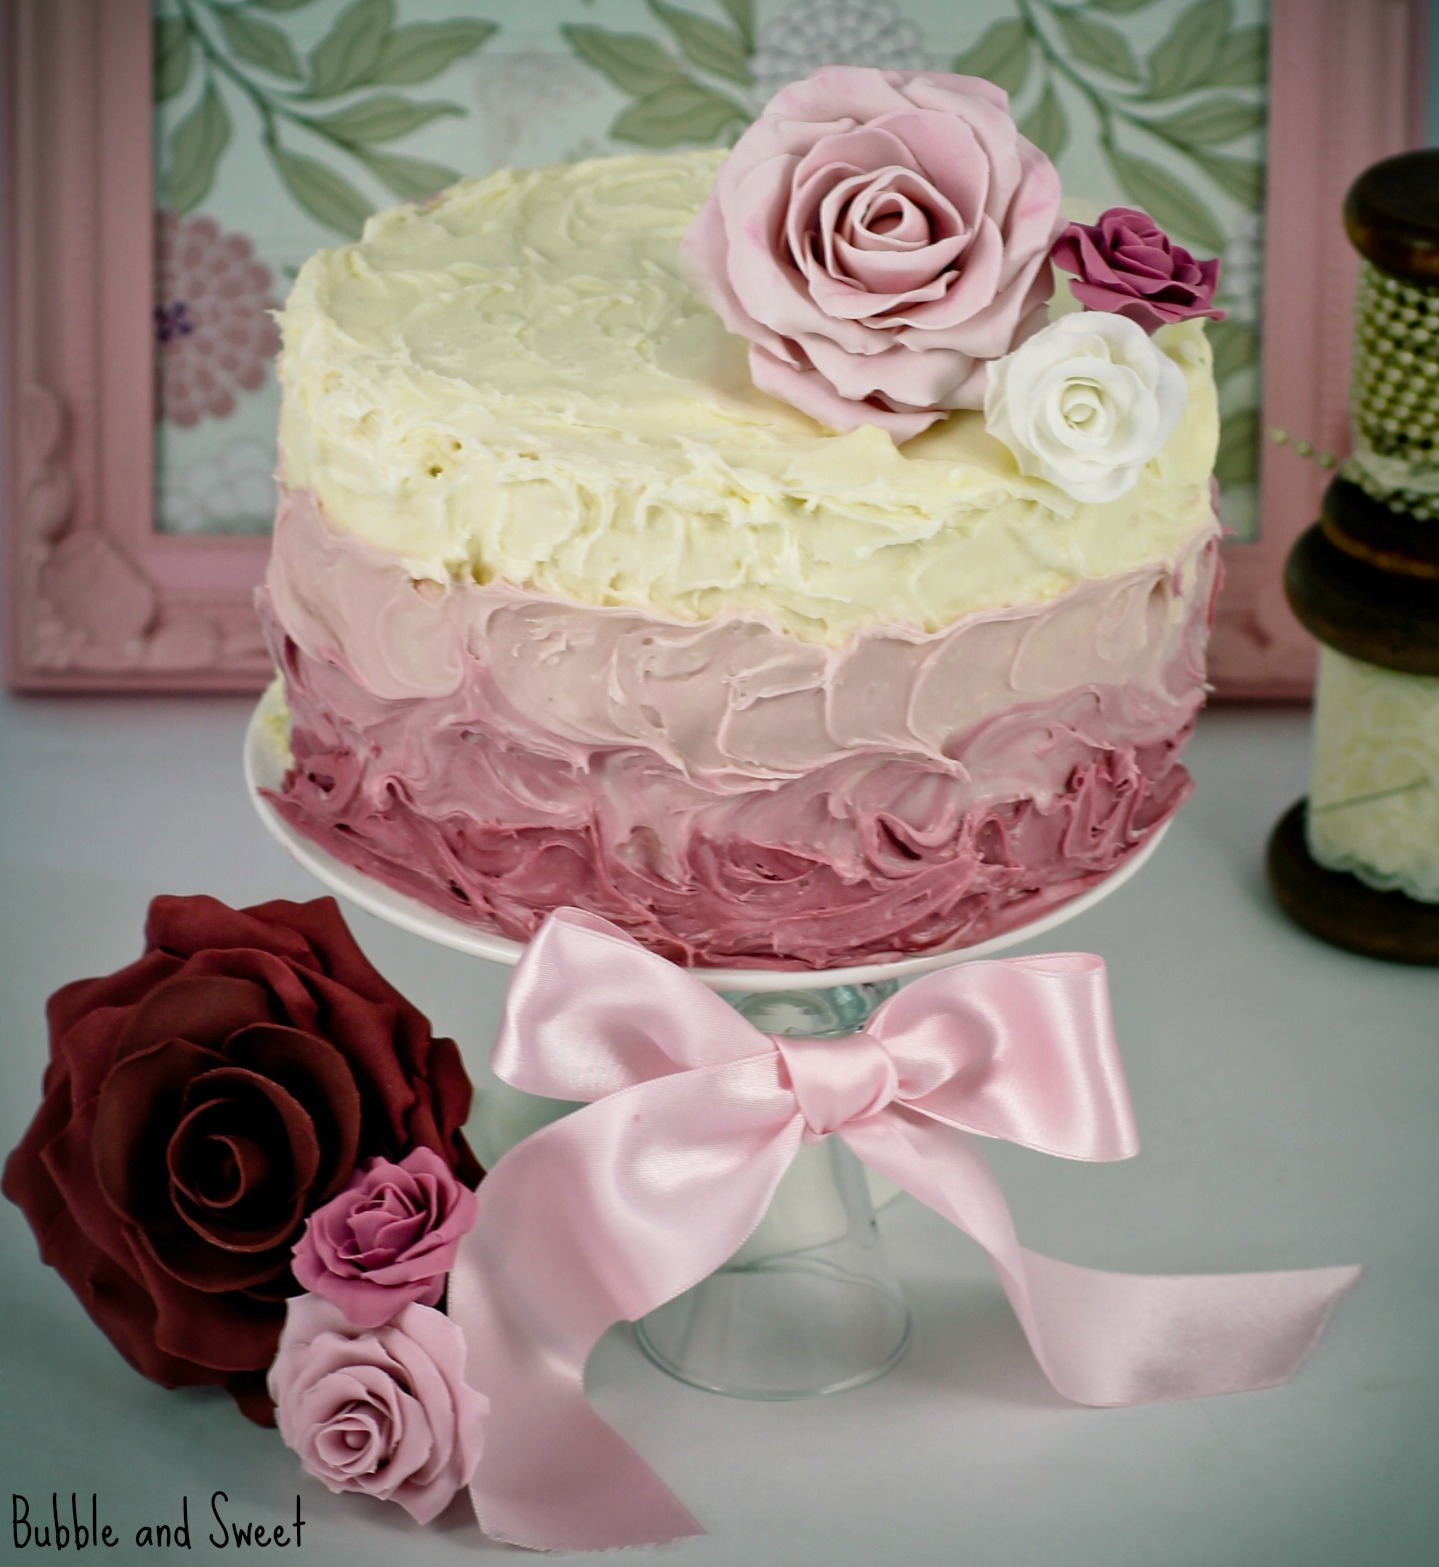 Cake Decorations Pink Roses : Bubble and Sweet: Butter versus Oil a comparison using ...